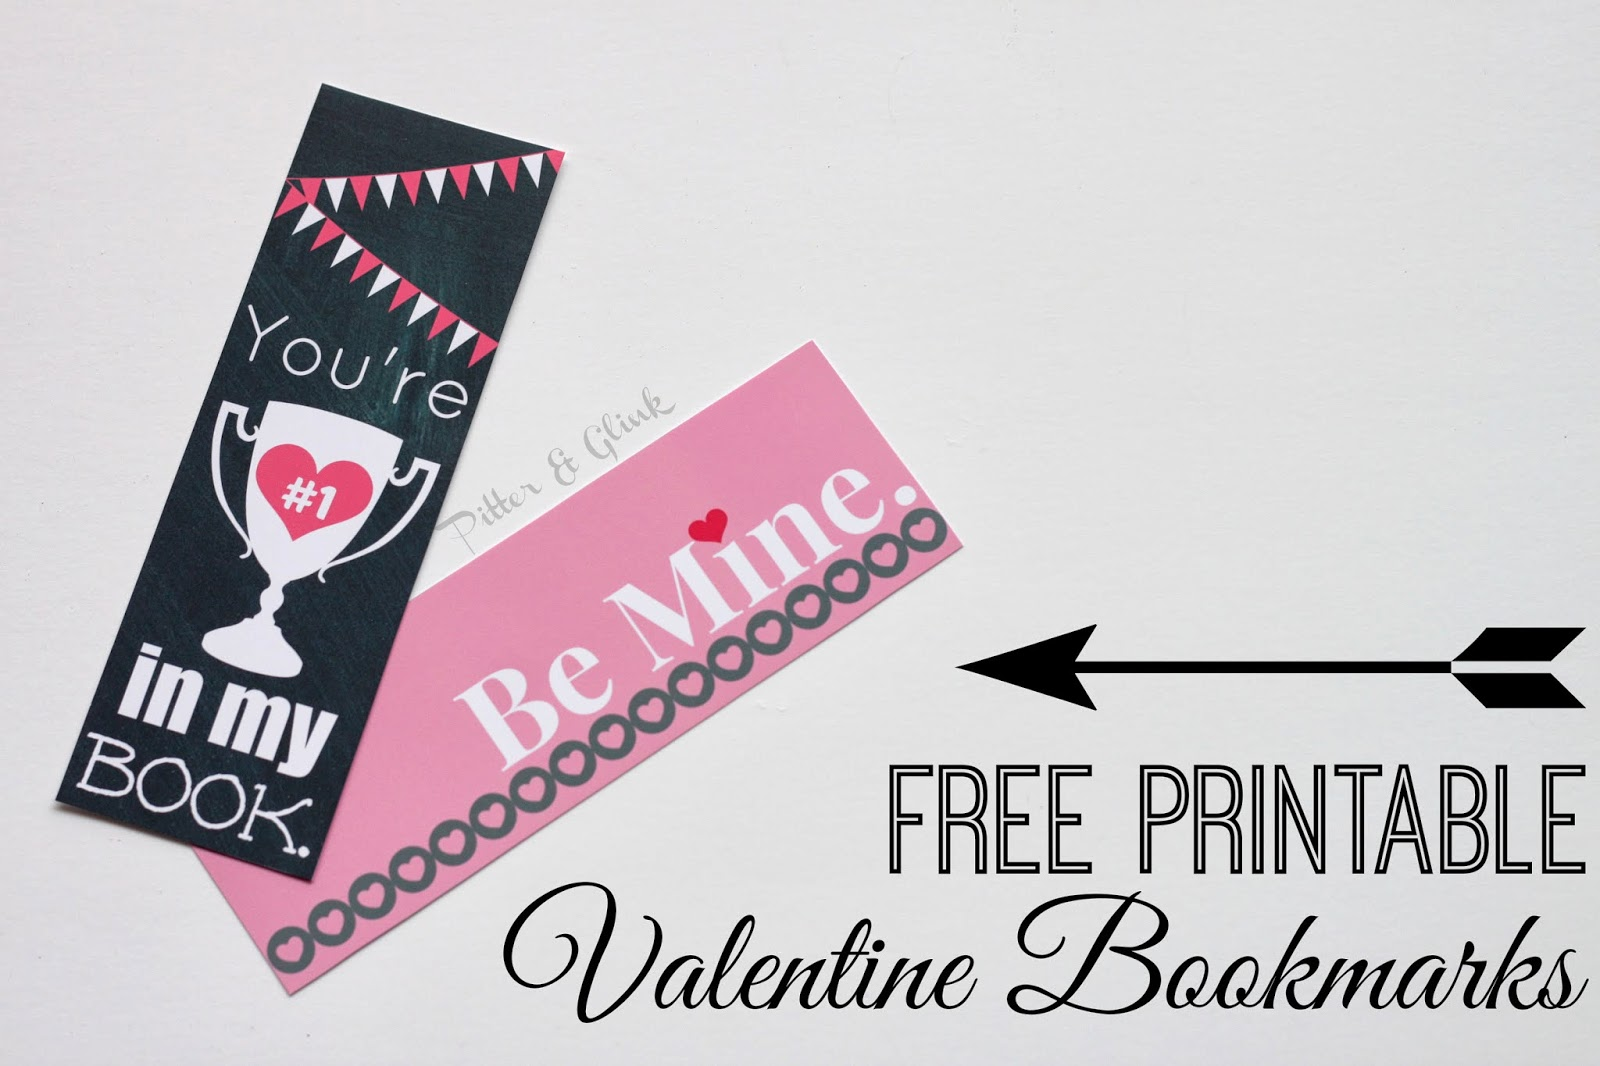 Download these cute printable bookmarks from Pitter and Glink just in time for Valentine's Day! www.PitterandGlink.com